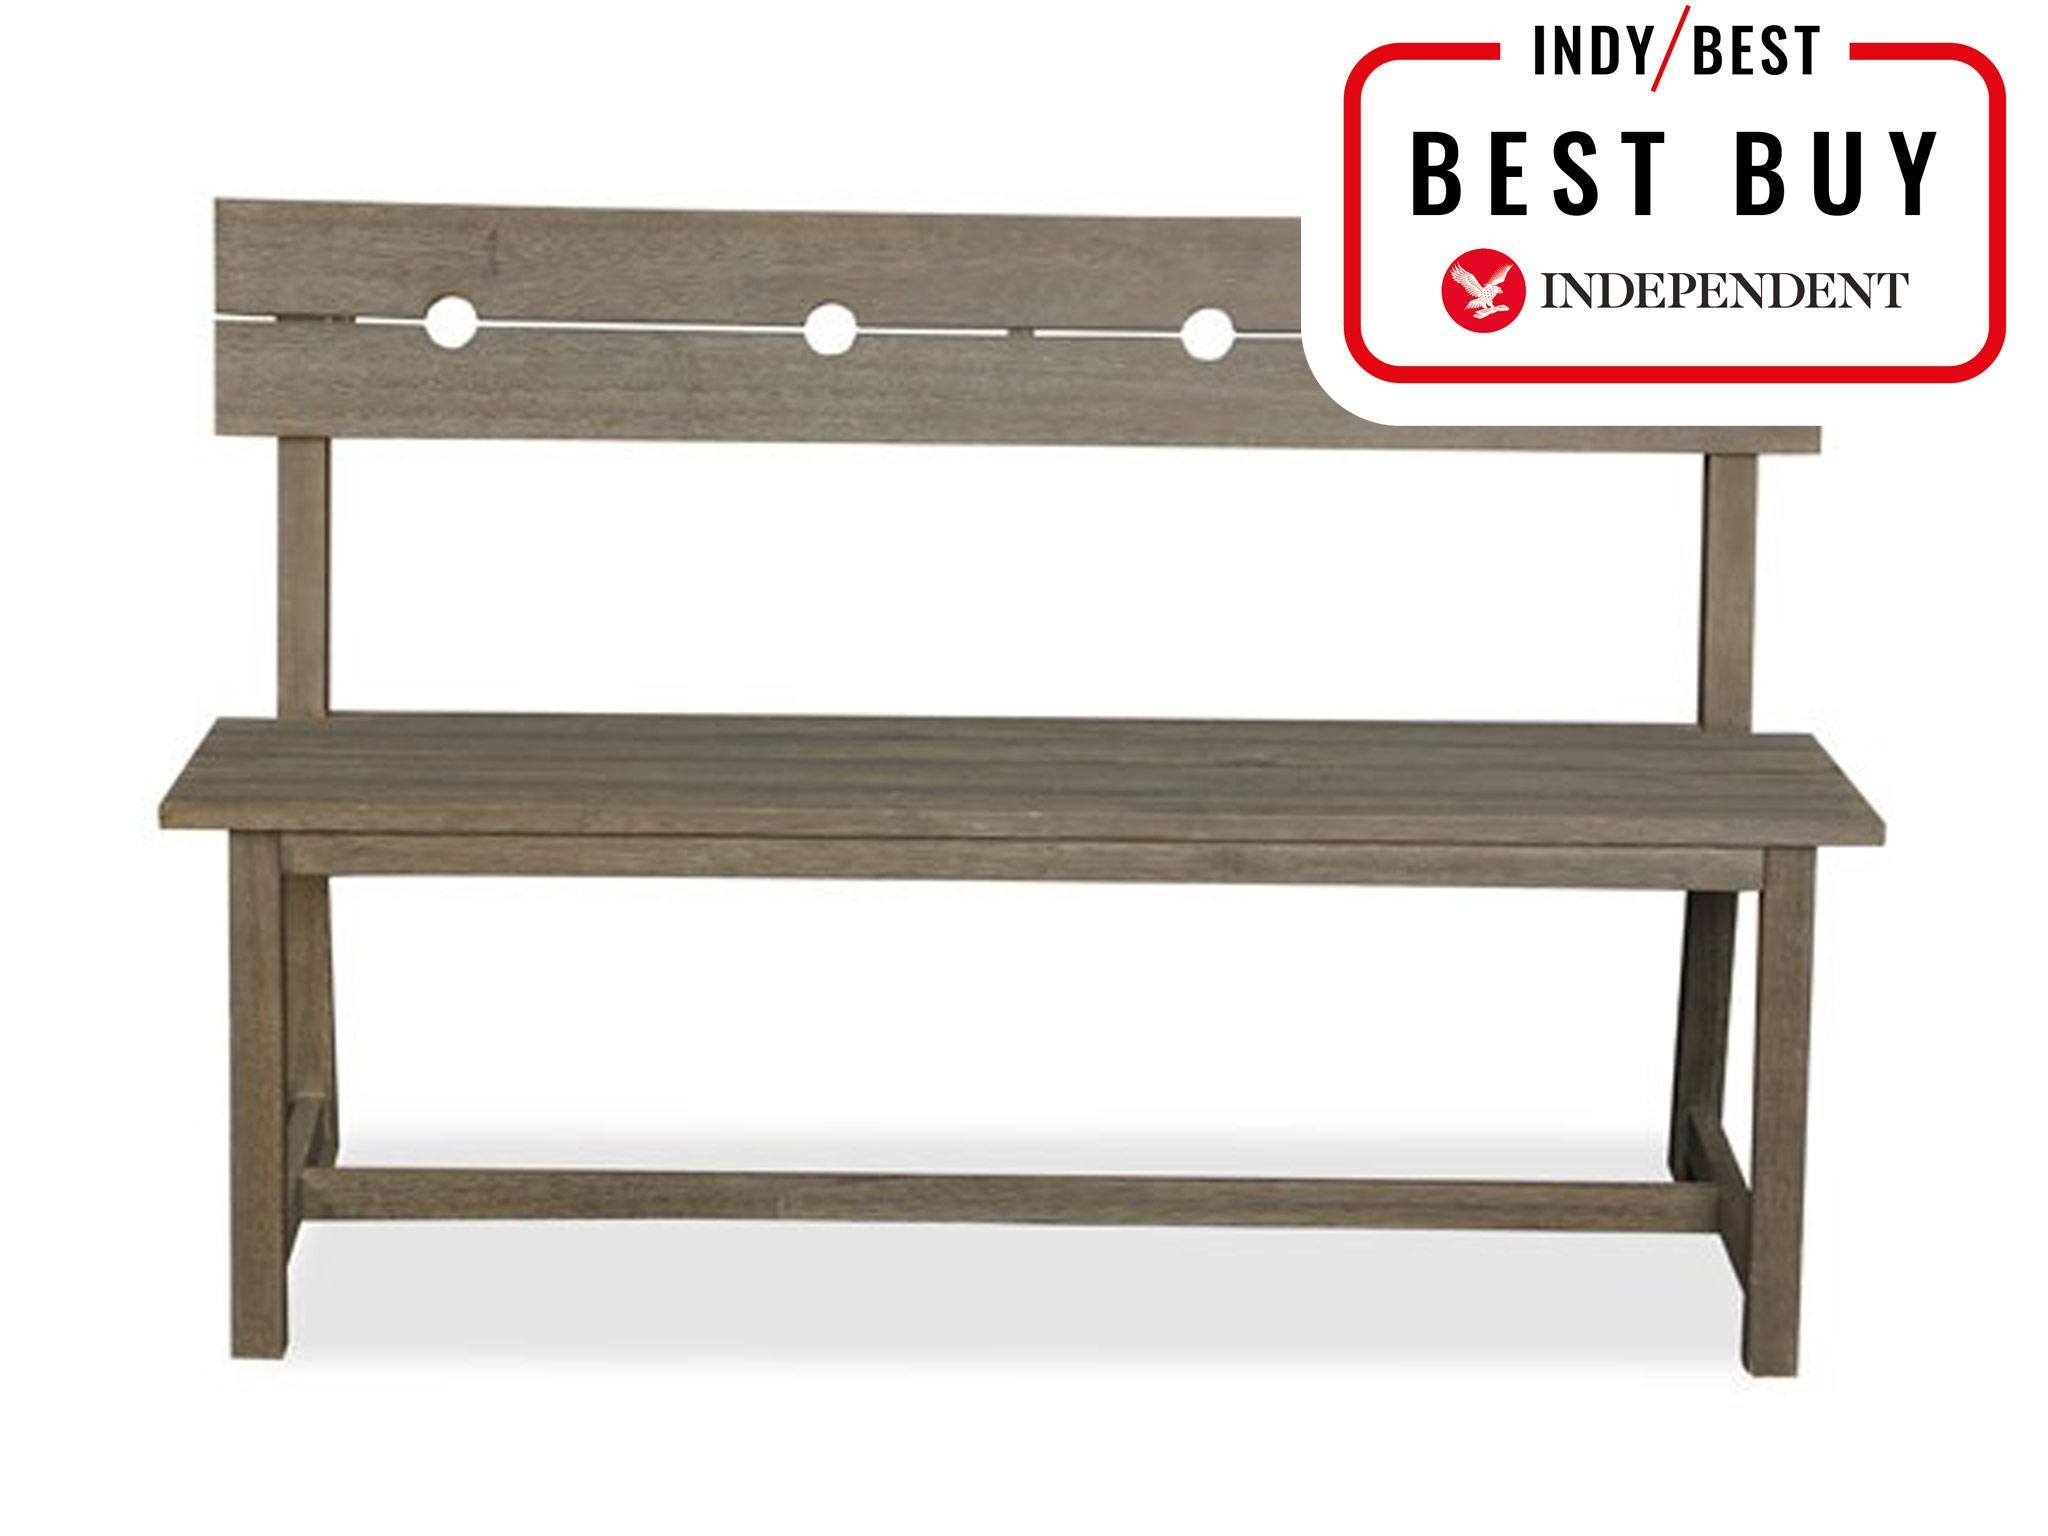 Prime 10 Best Garden Benches The Independent Andrewgaddart Wooden Chair Designs For Living Room Andrewgaddartcom